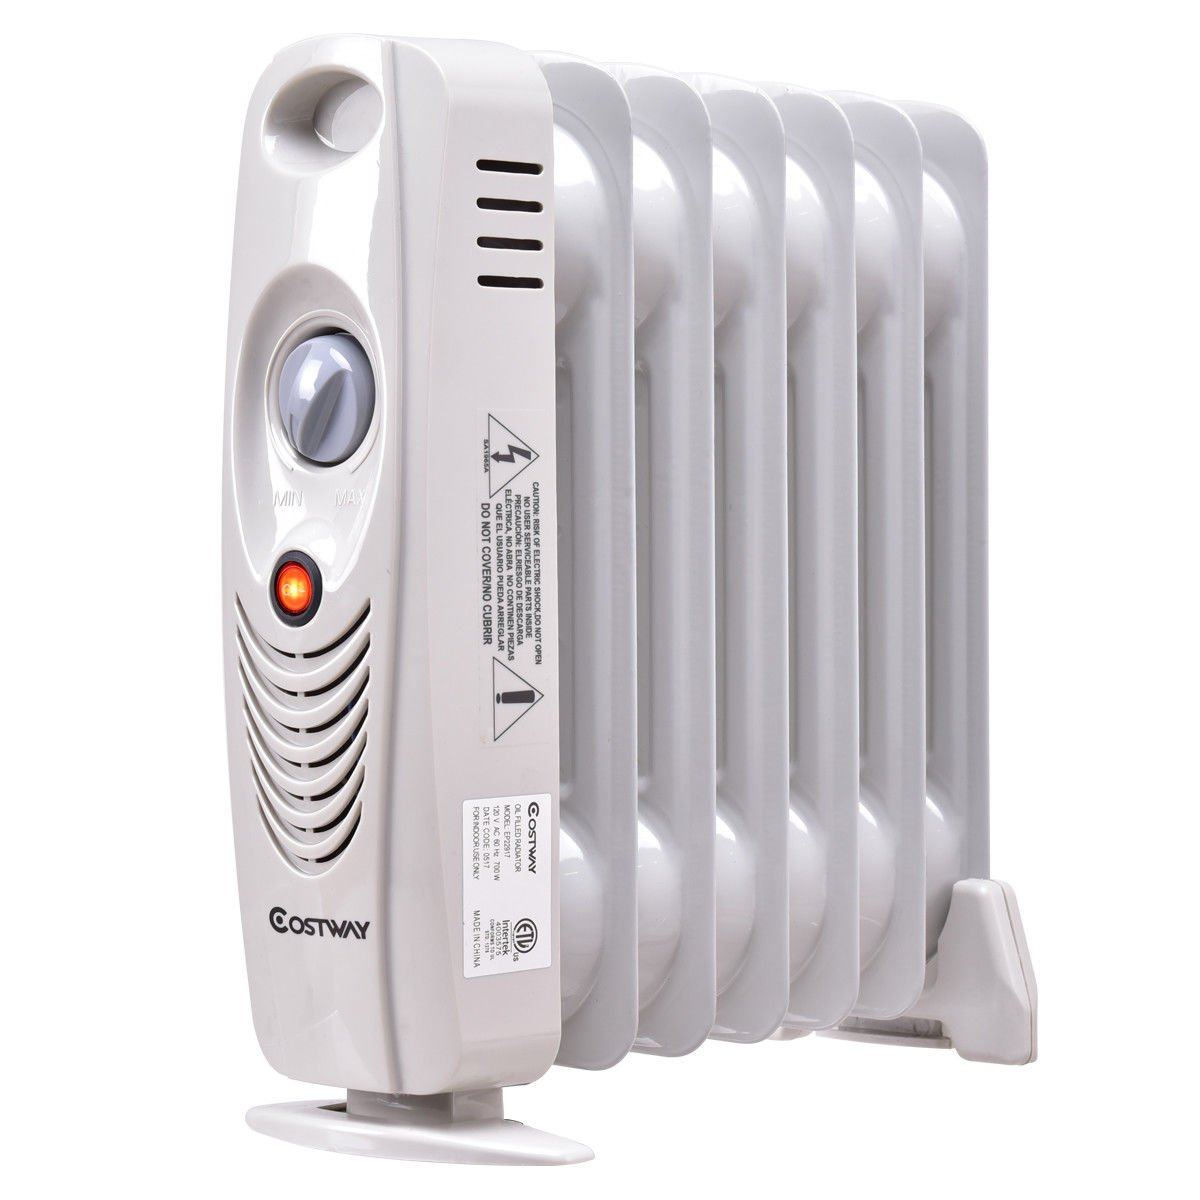 8 Best Space Heaters for Large Room 2019 - Buyer's Guide